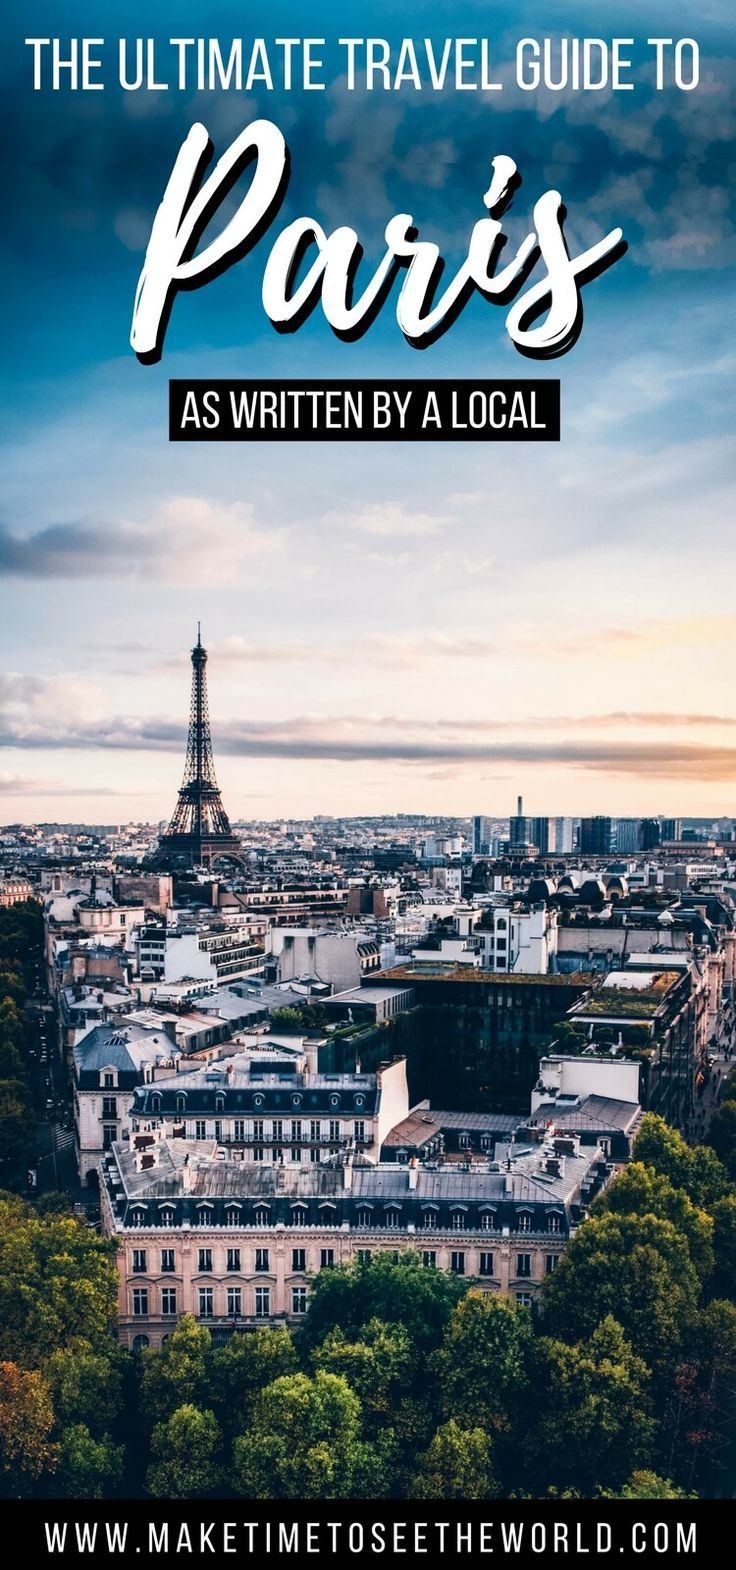 Whether you're planning a long weekend or 3 days in #Paris, this post is for you. Packed with ideas for what to do, where to stay and what to eat - as recommended by a local - let us give you the inside scoop on all things Parisian *** #Paris #France - Paris Itinerary | 3 days in Paris | Things to do in Paris | Paris Travel | Paris Travel Tips | Paris Travel Places | Paris Travel Guide | Paris Travel Things to do | Paris Weekend